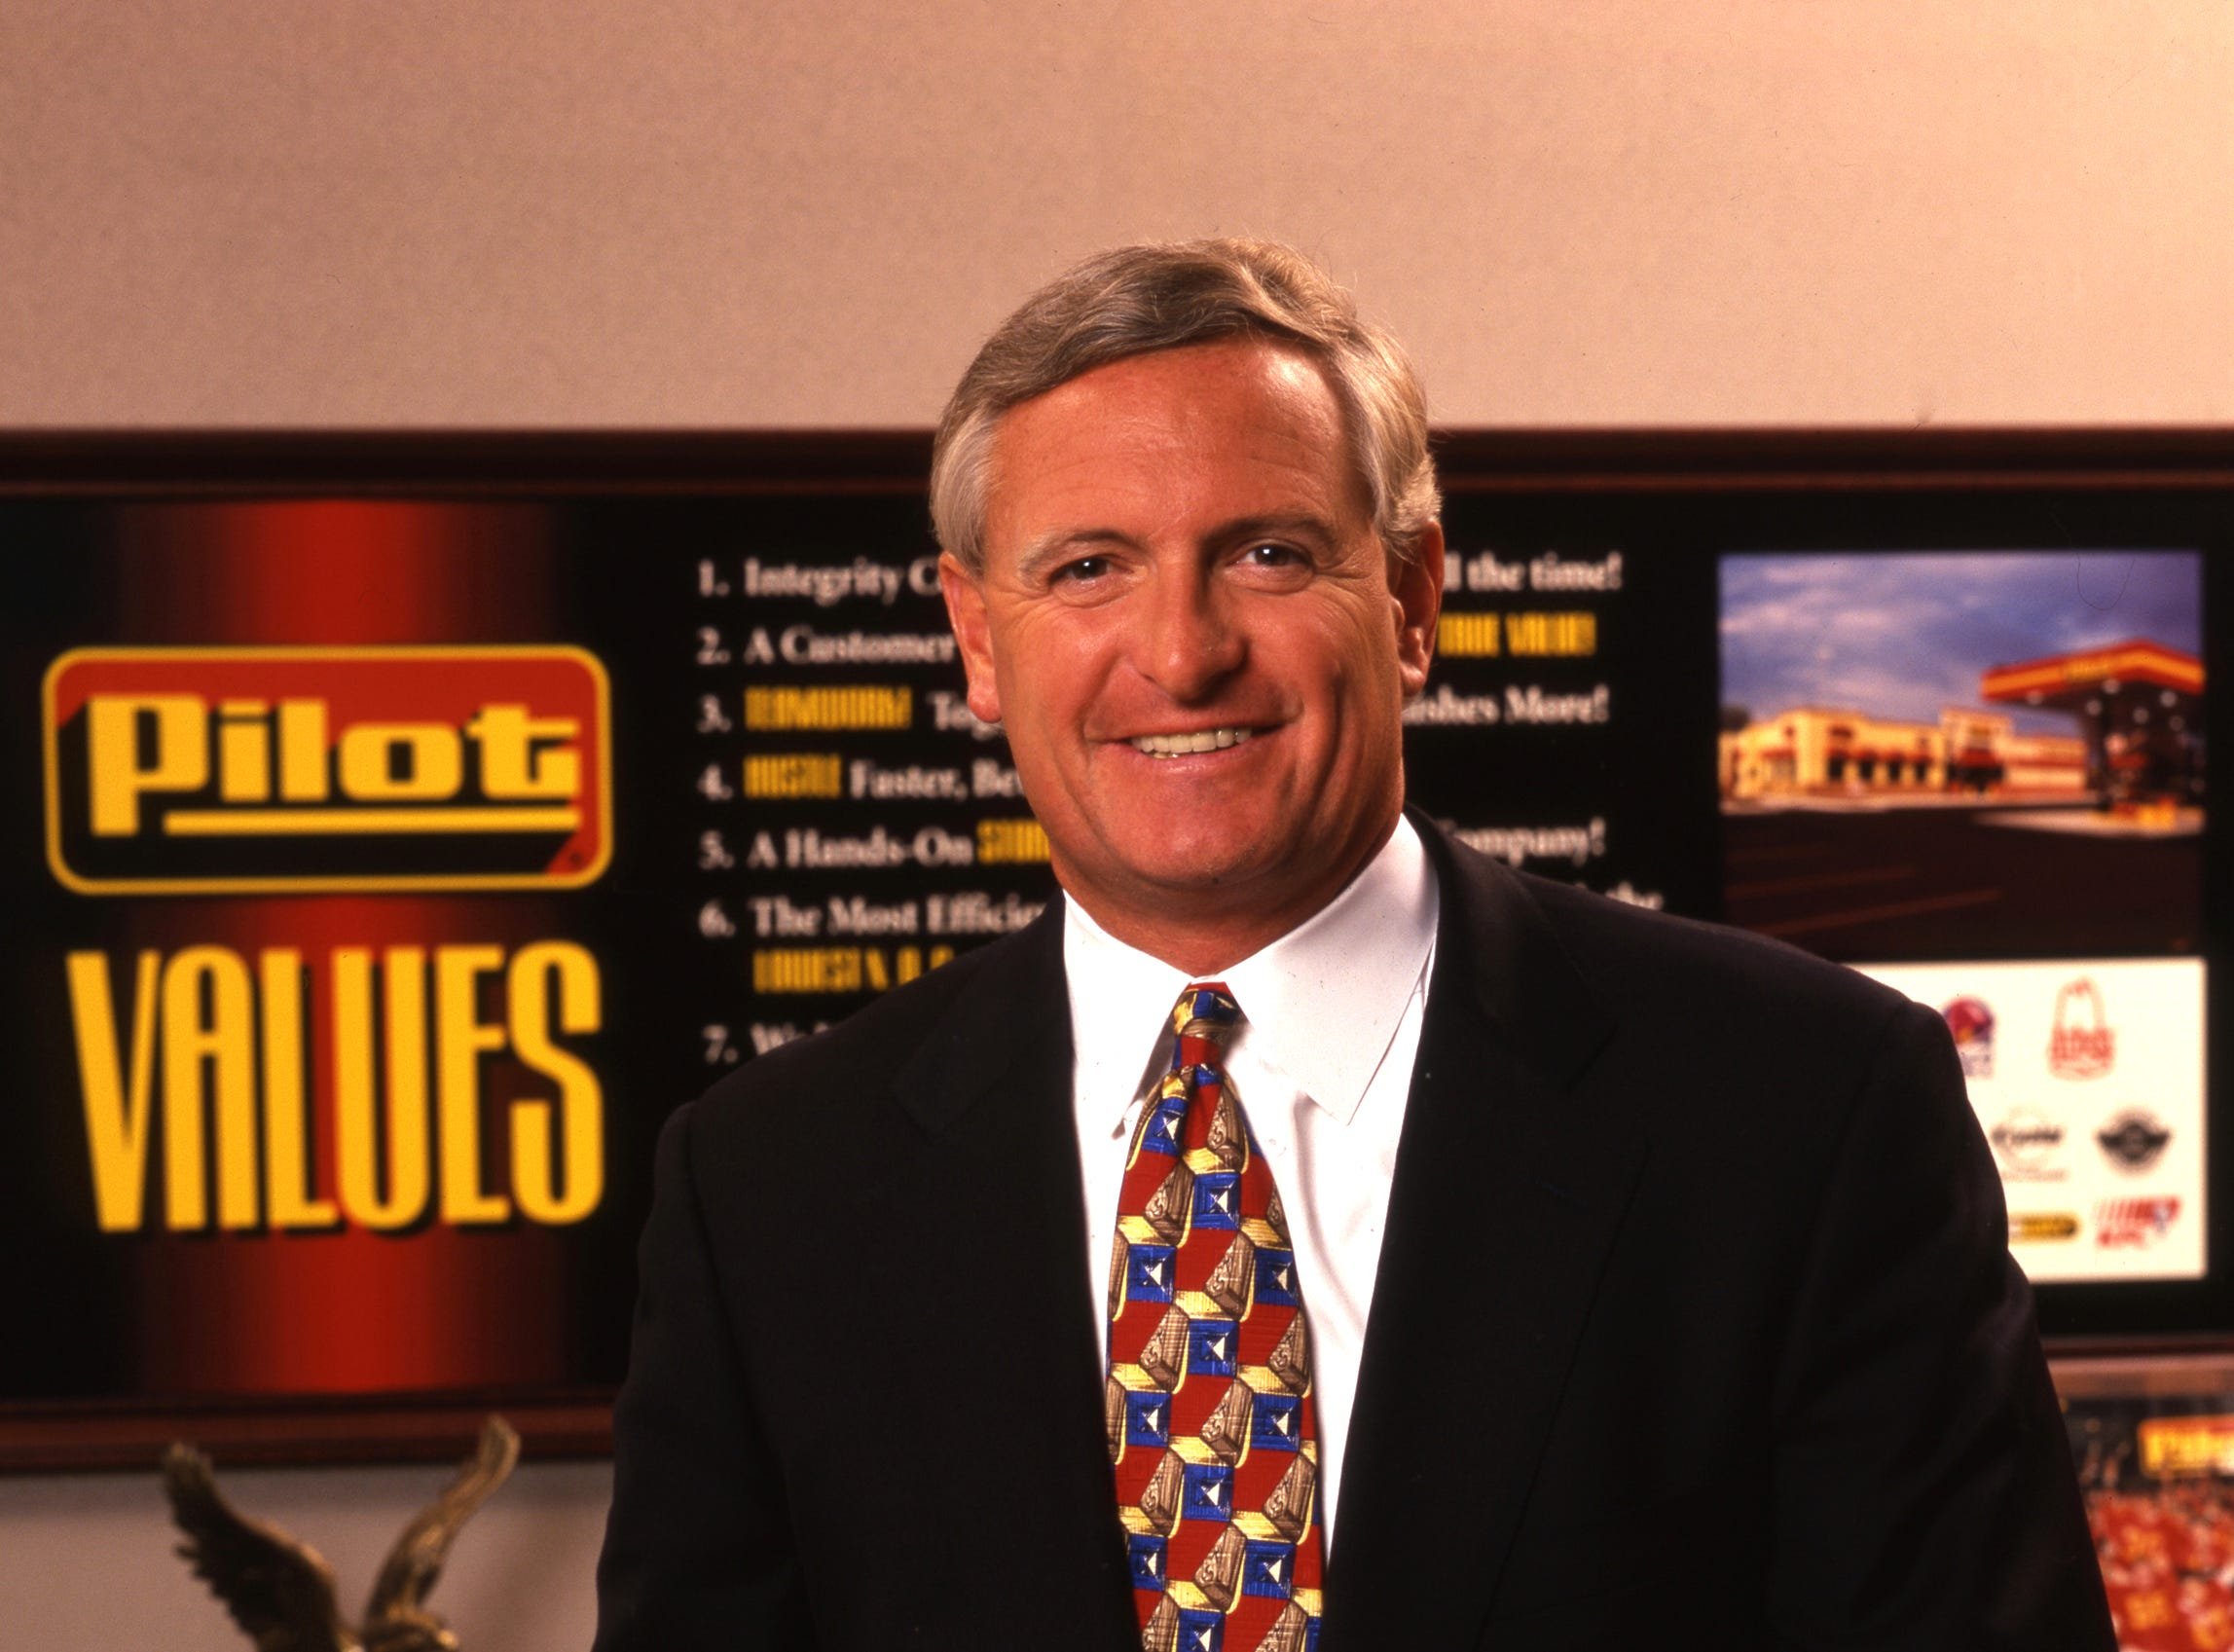 Jimmy Haslam, an inductee of the 2007 Business Hall of Fame, will be inducted into the 19th Junior Achievement of East Tennessee Business Hall of Fame on March 27, 2007 at the Knoxville Convention Center.